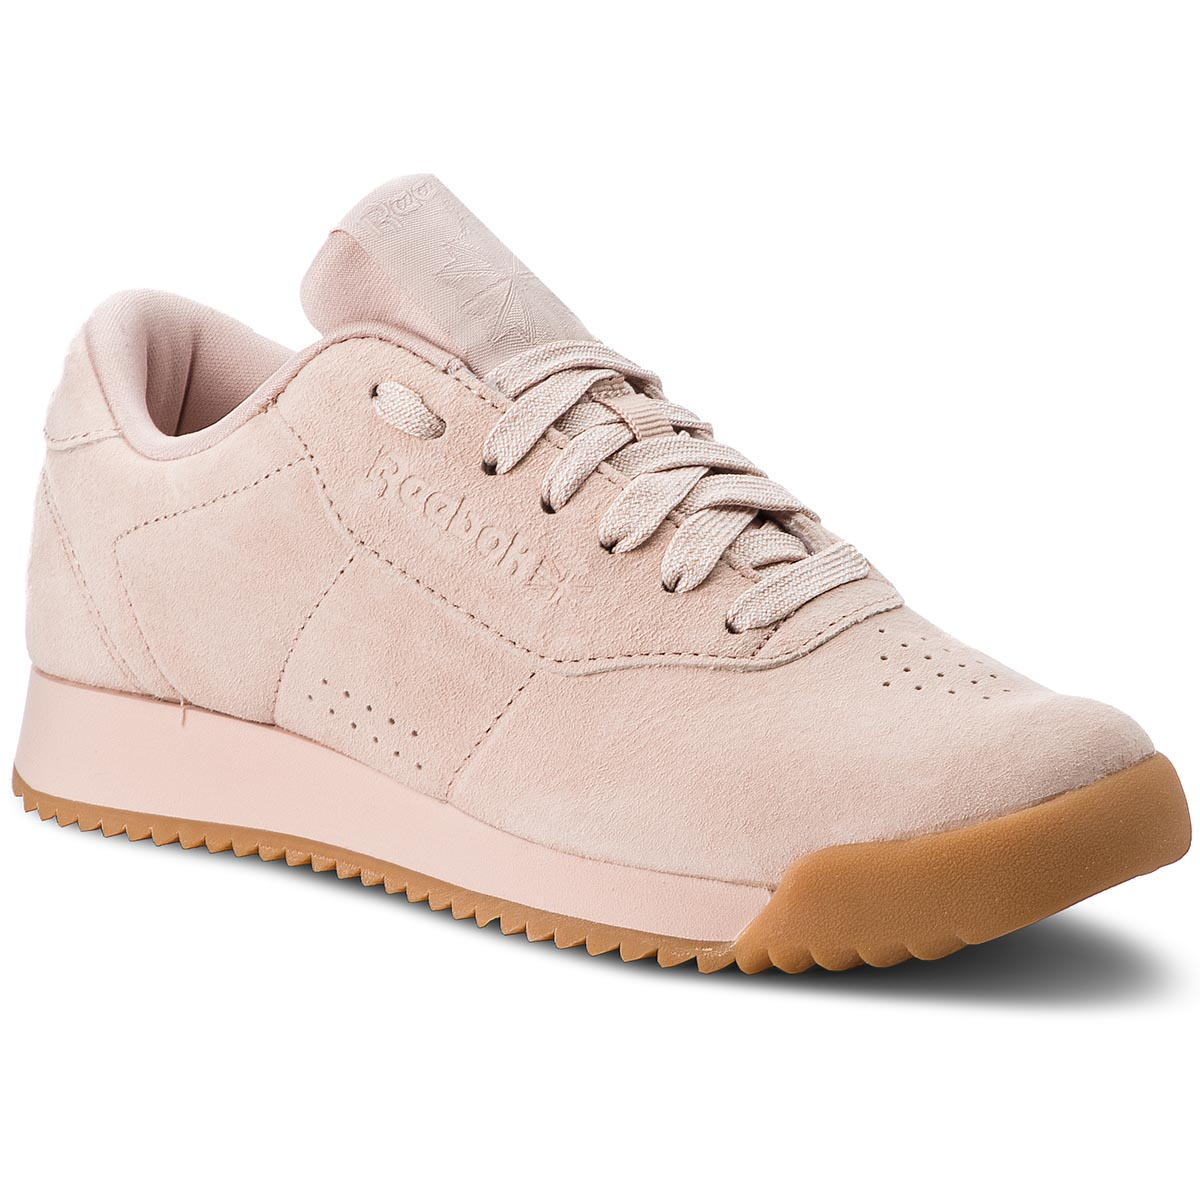 new product c7668 426b9 Buty Reebok - Princess Ripple CN3025 Bare Beige Bare Brown Gum